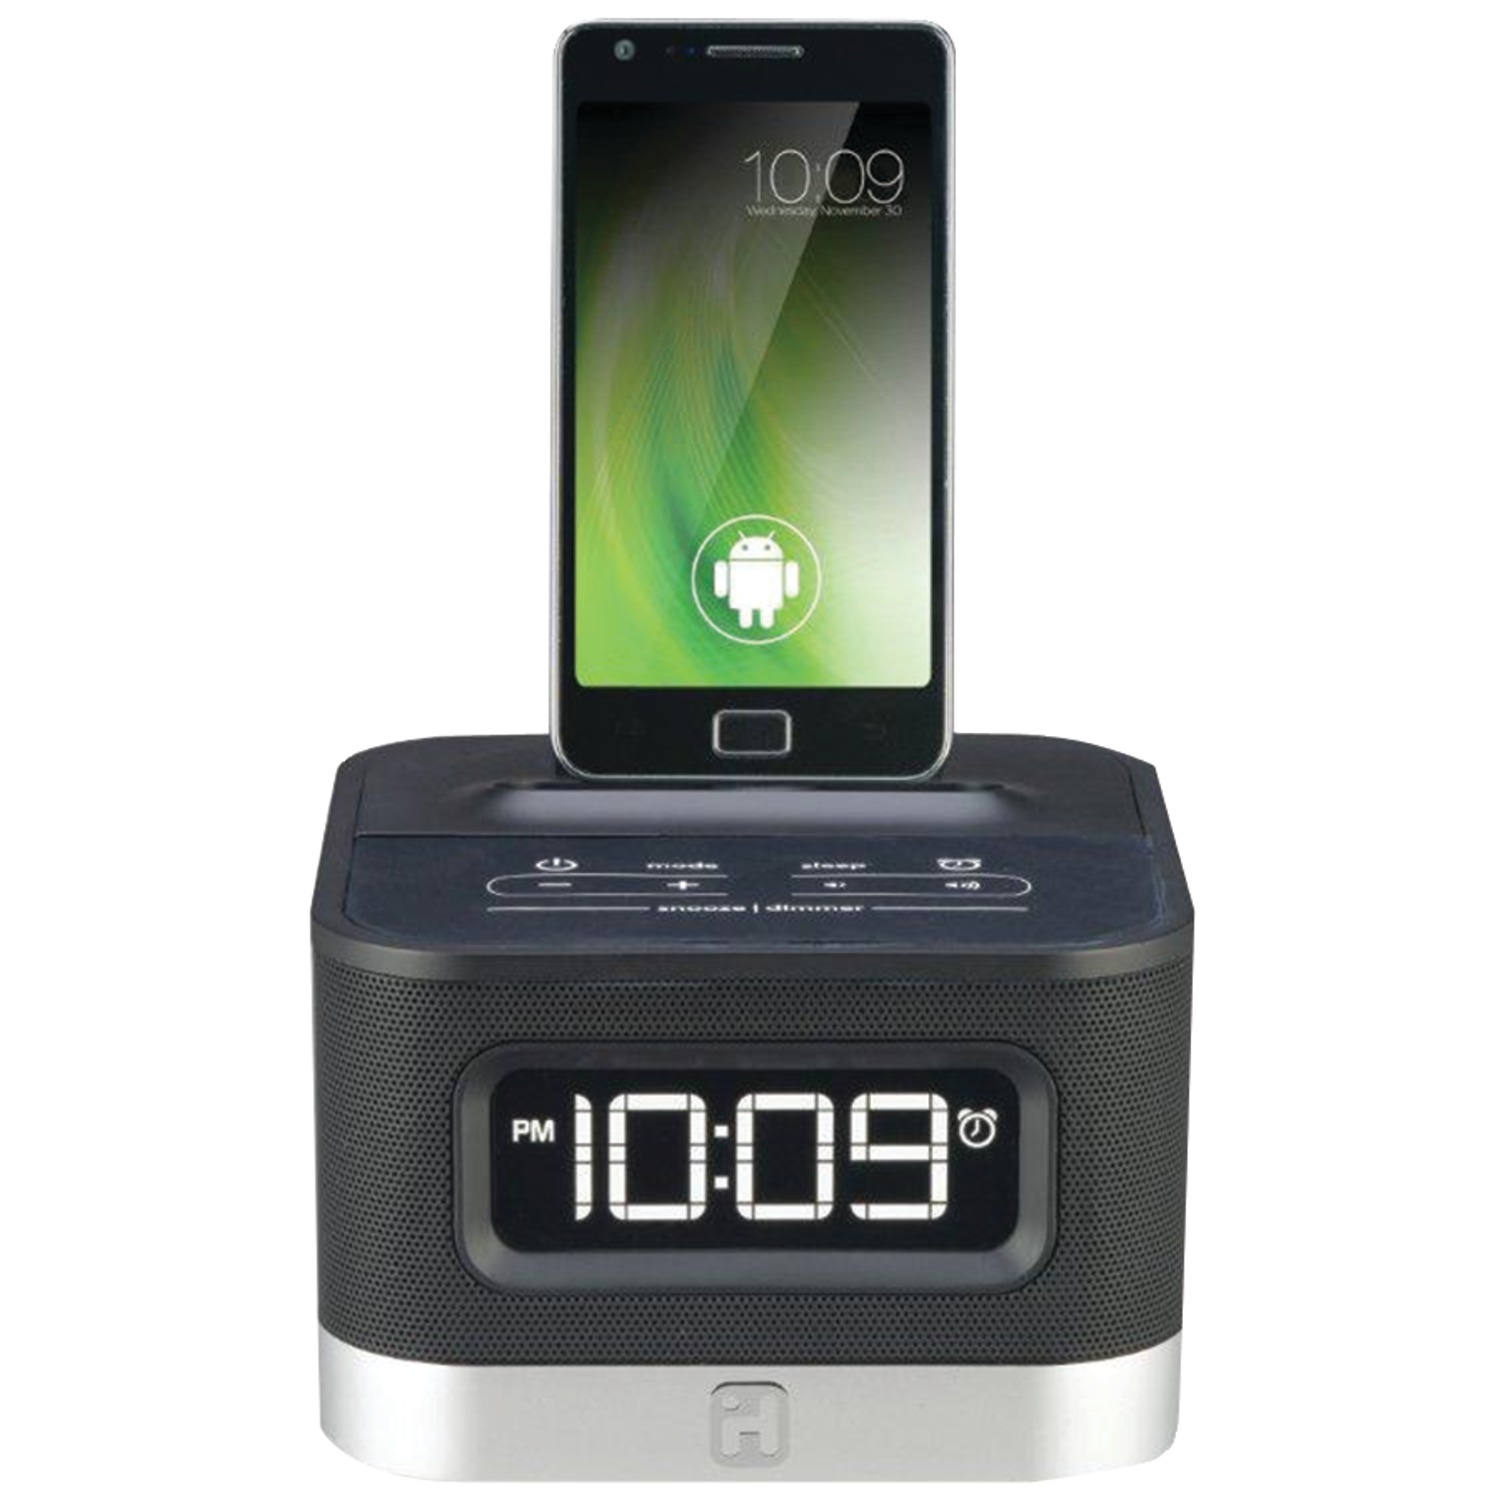 Ihome alarm clock radio : Costco uk black friday